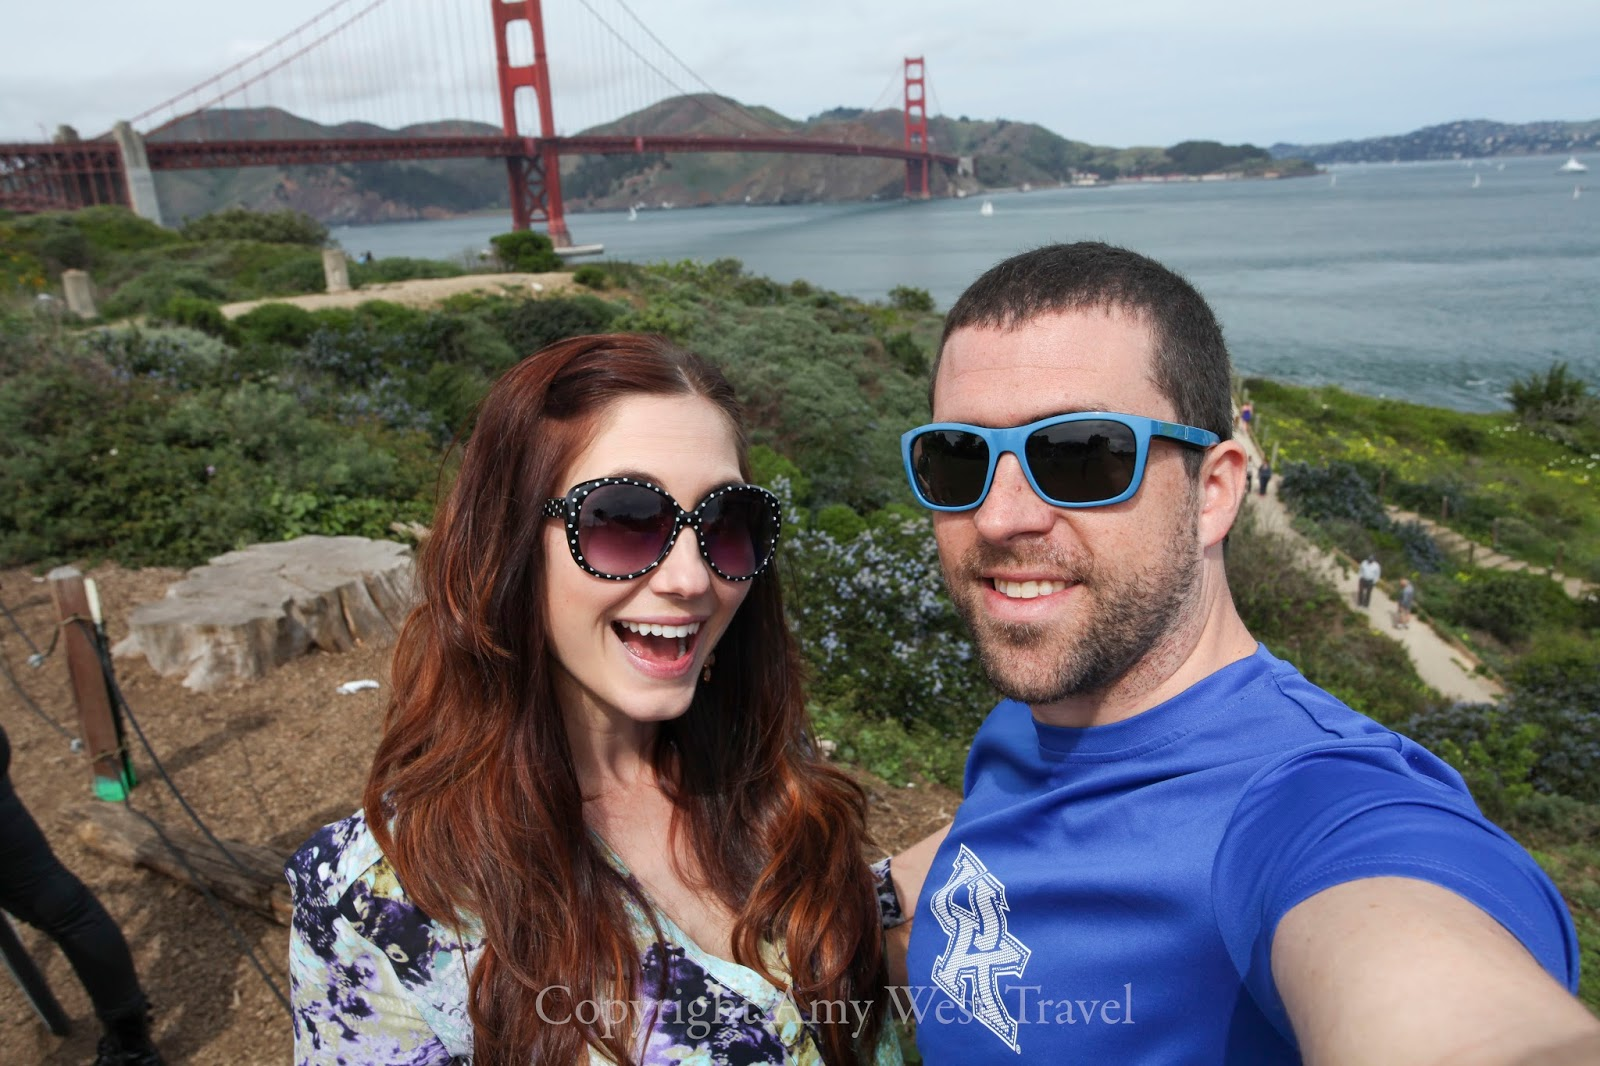 Amy West and husband David in front of the Golden Gate Bridge